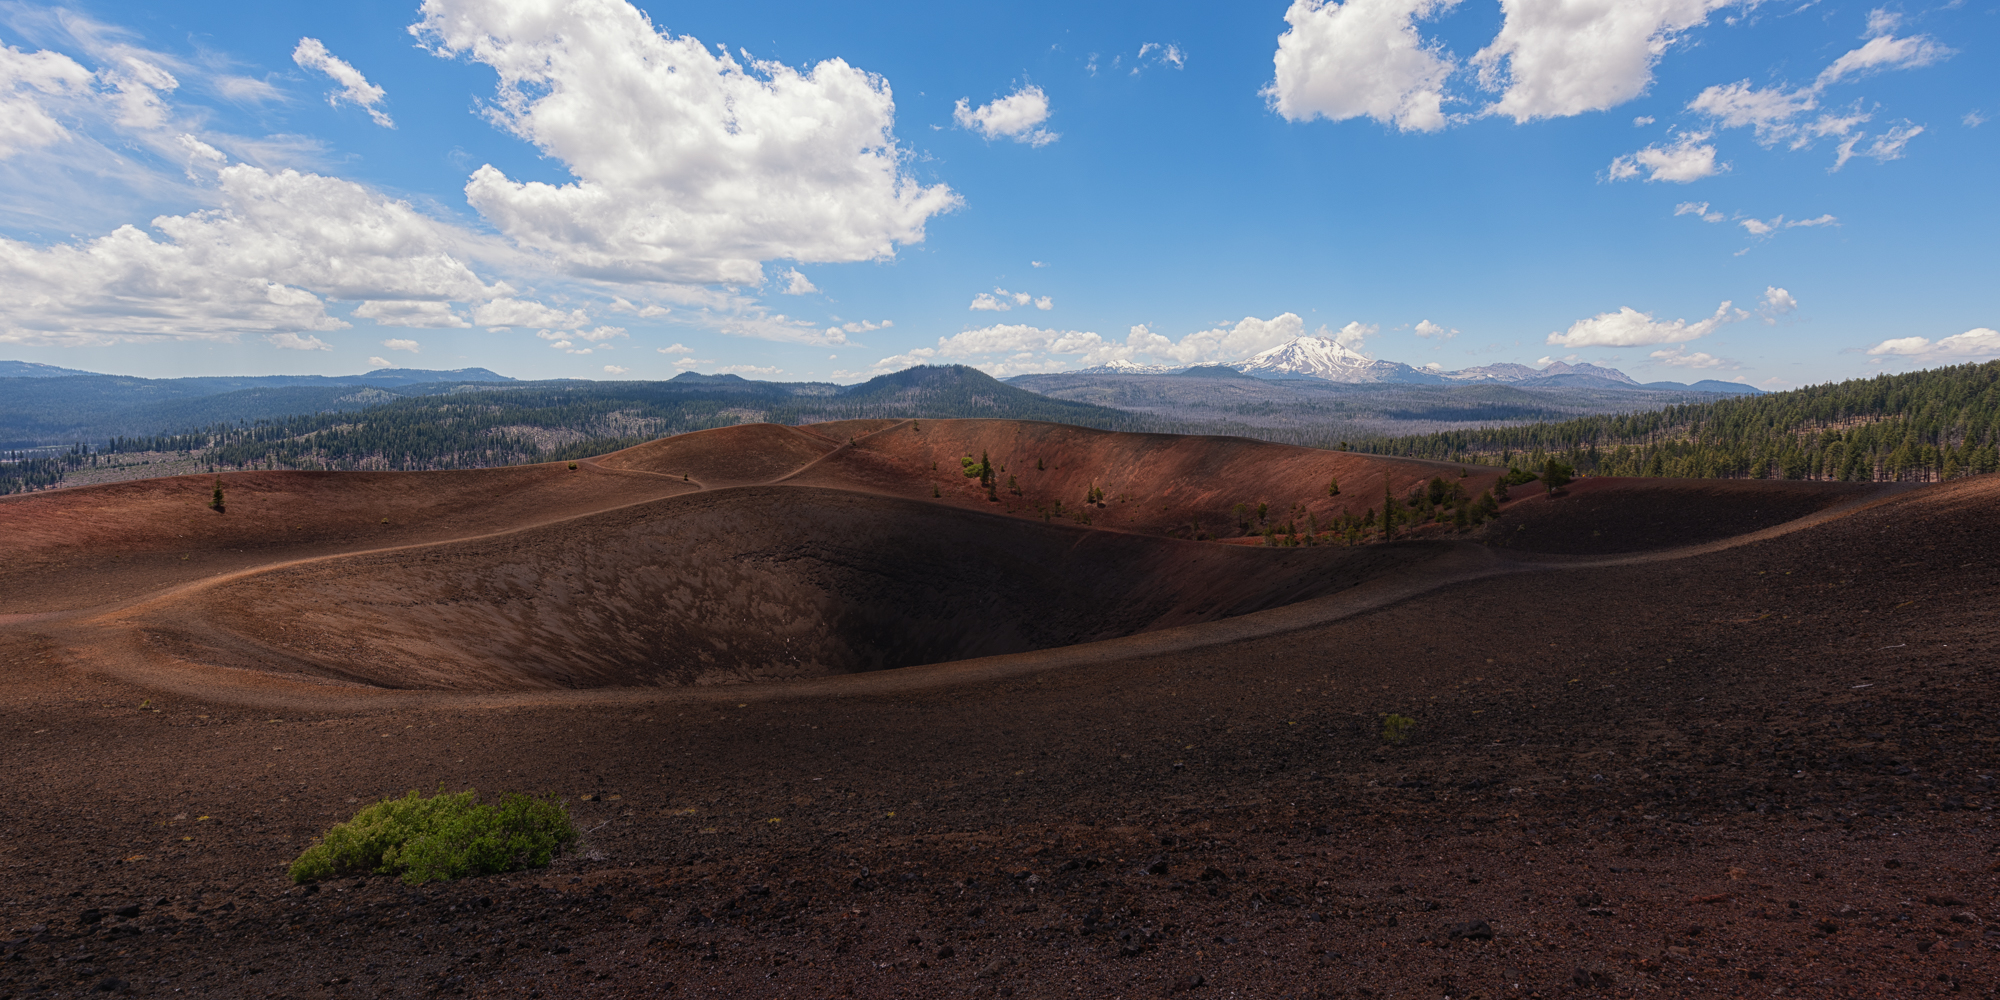 The crater of Cinder Cone looking in western direction towards Lassen Peak, who gave its name to the National Park in Northern Californa.